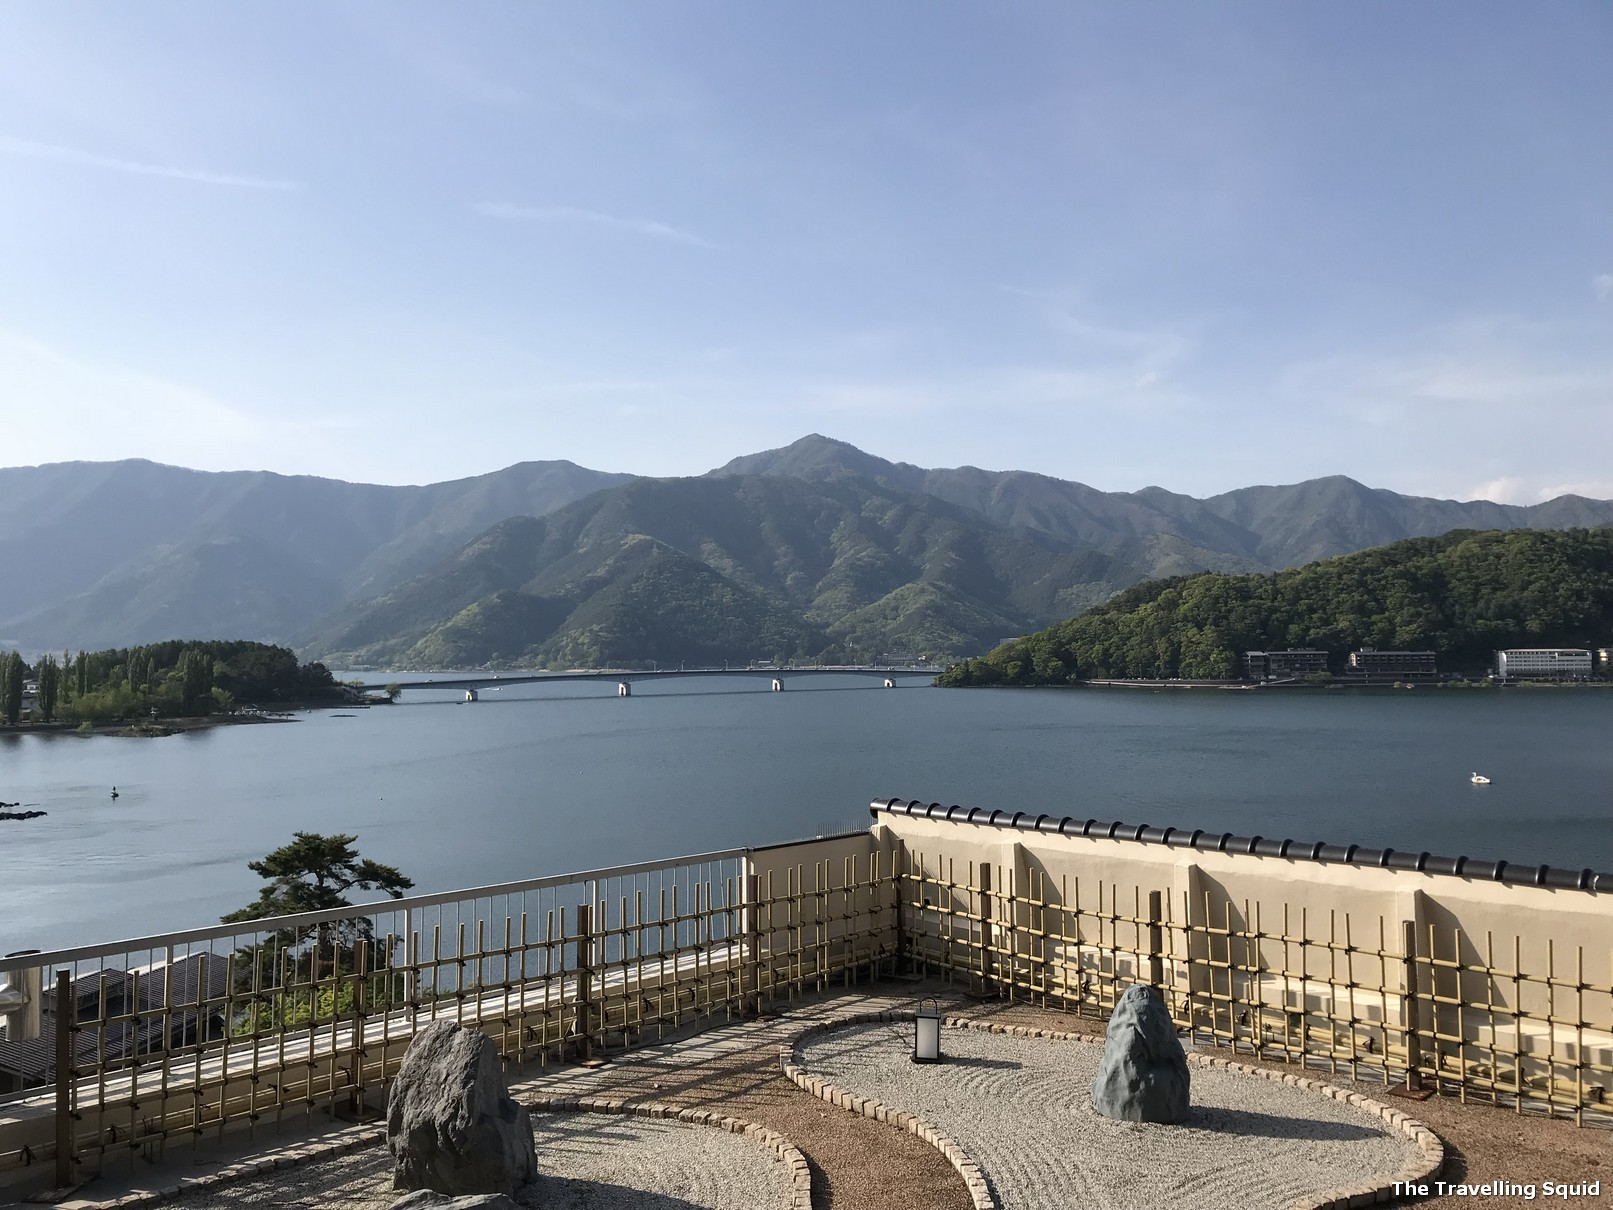 Review Our Ryokan In Hotel Konanso In Kawaguchiko With A